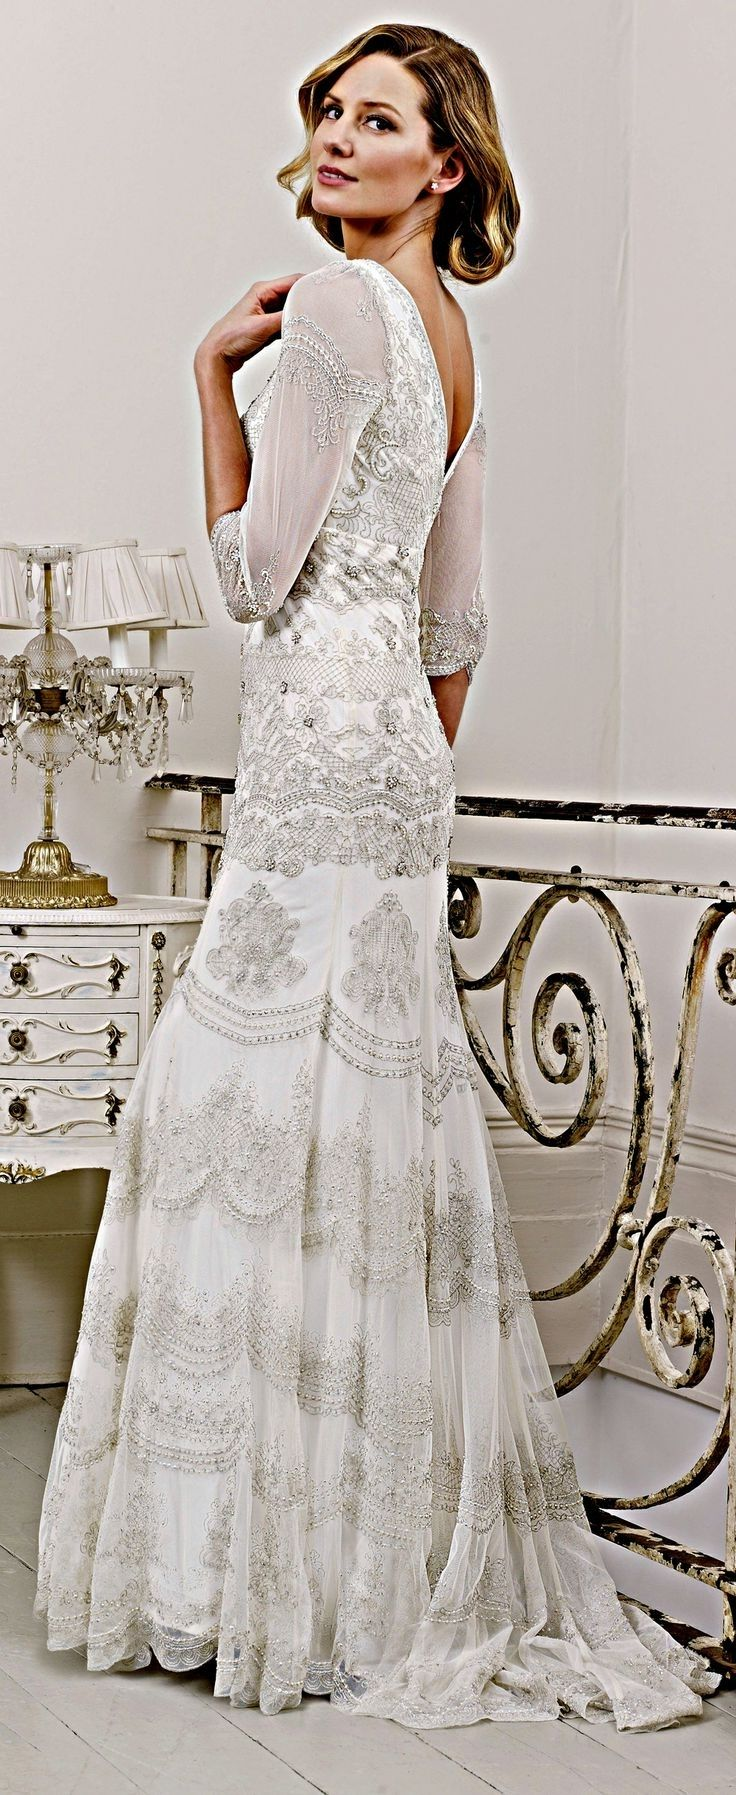 Wedding dresses for older brides second wedding with for Bridal dresses for second weddings